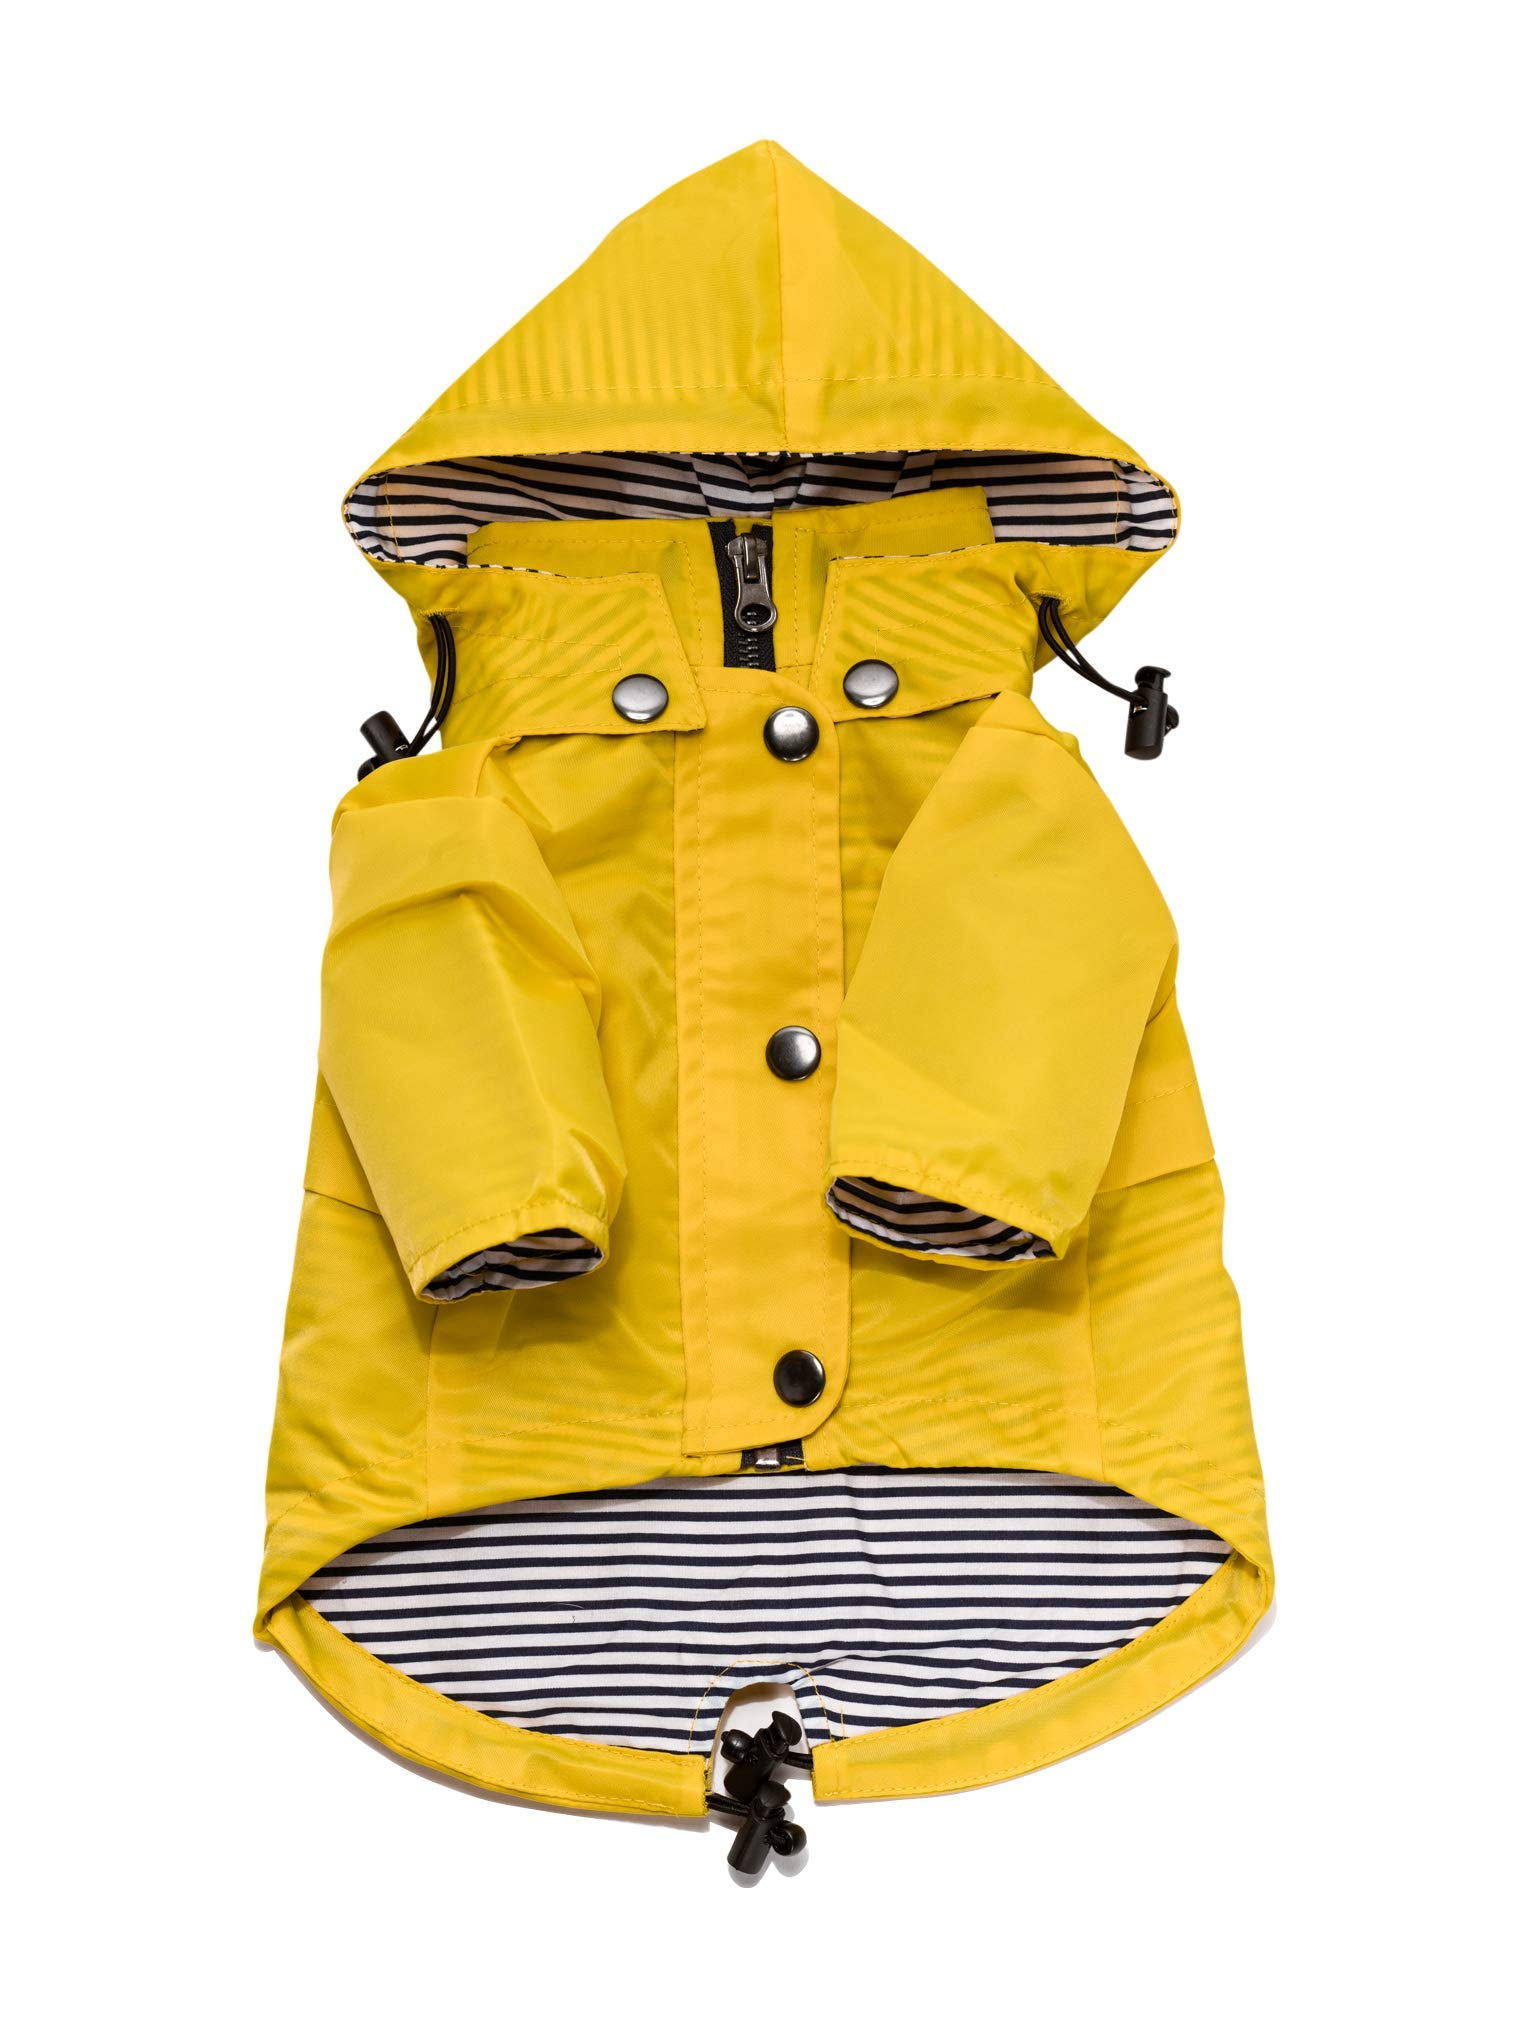 Yellow Zip Up Dog Raincoat with Reflective Buttons, Pockets, Rain/Water Resistant, Adjustable Drawstring, Removable Hood - Size XS to XXL Available - Stylish Premium Dog Raincoats by Ellie (M) by Ellie Dog Wear